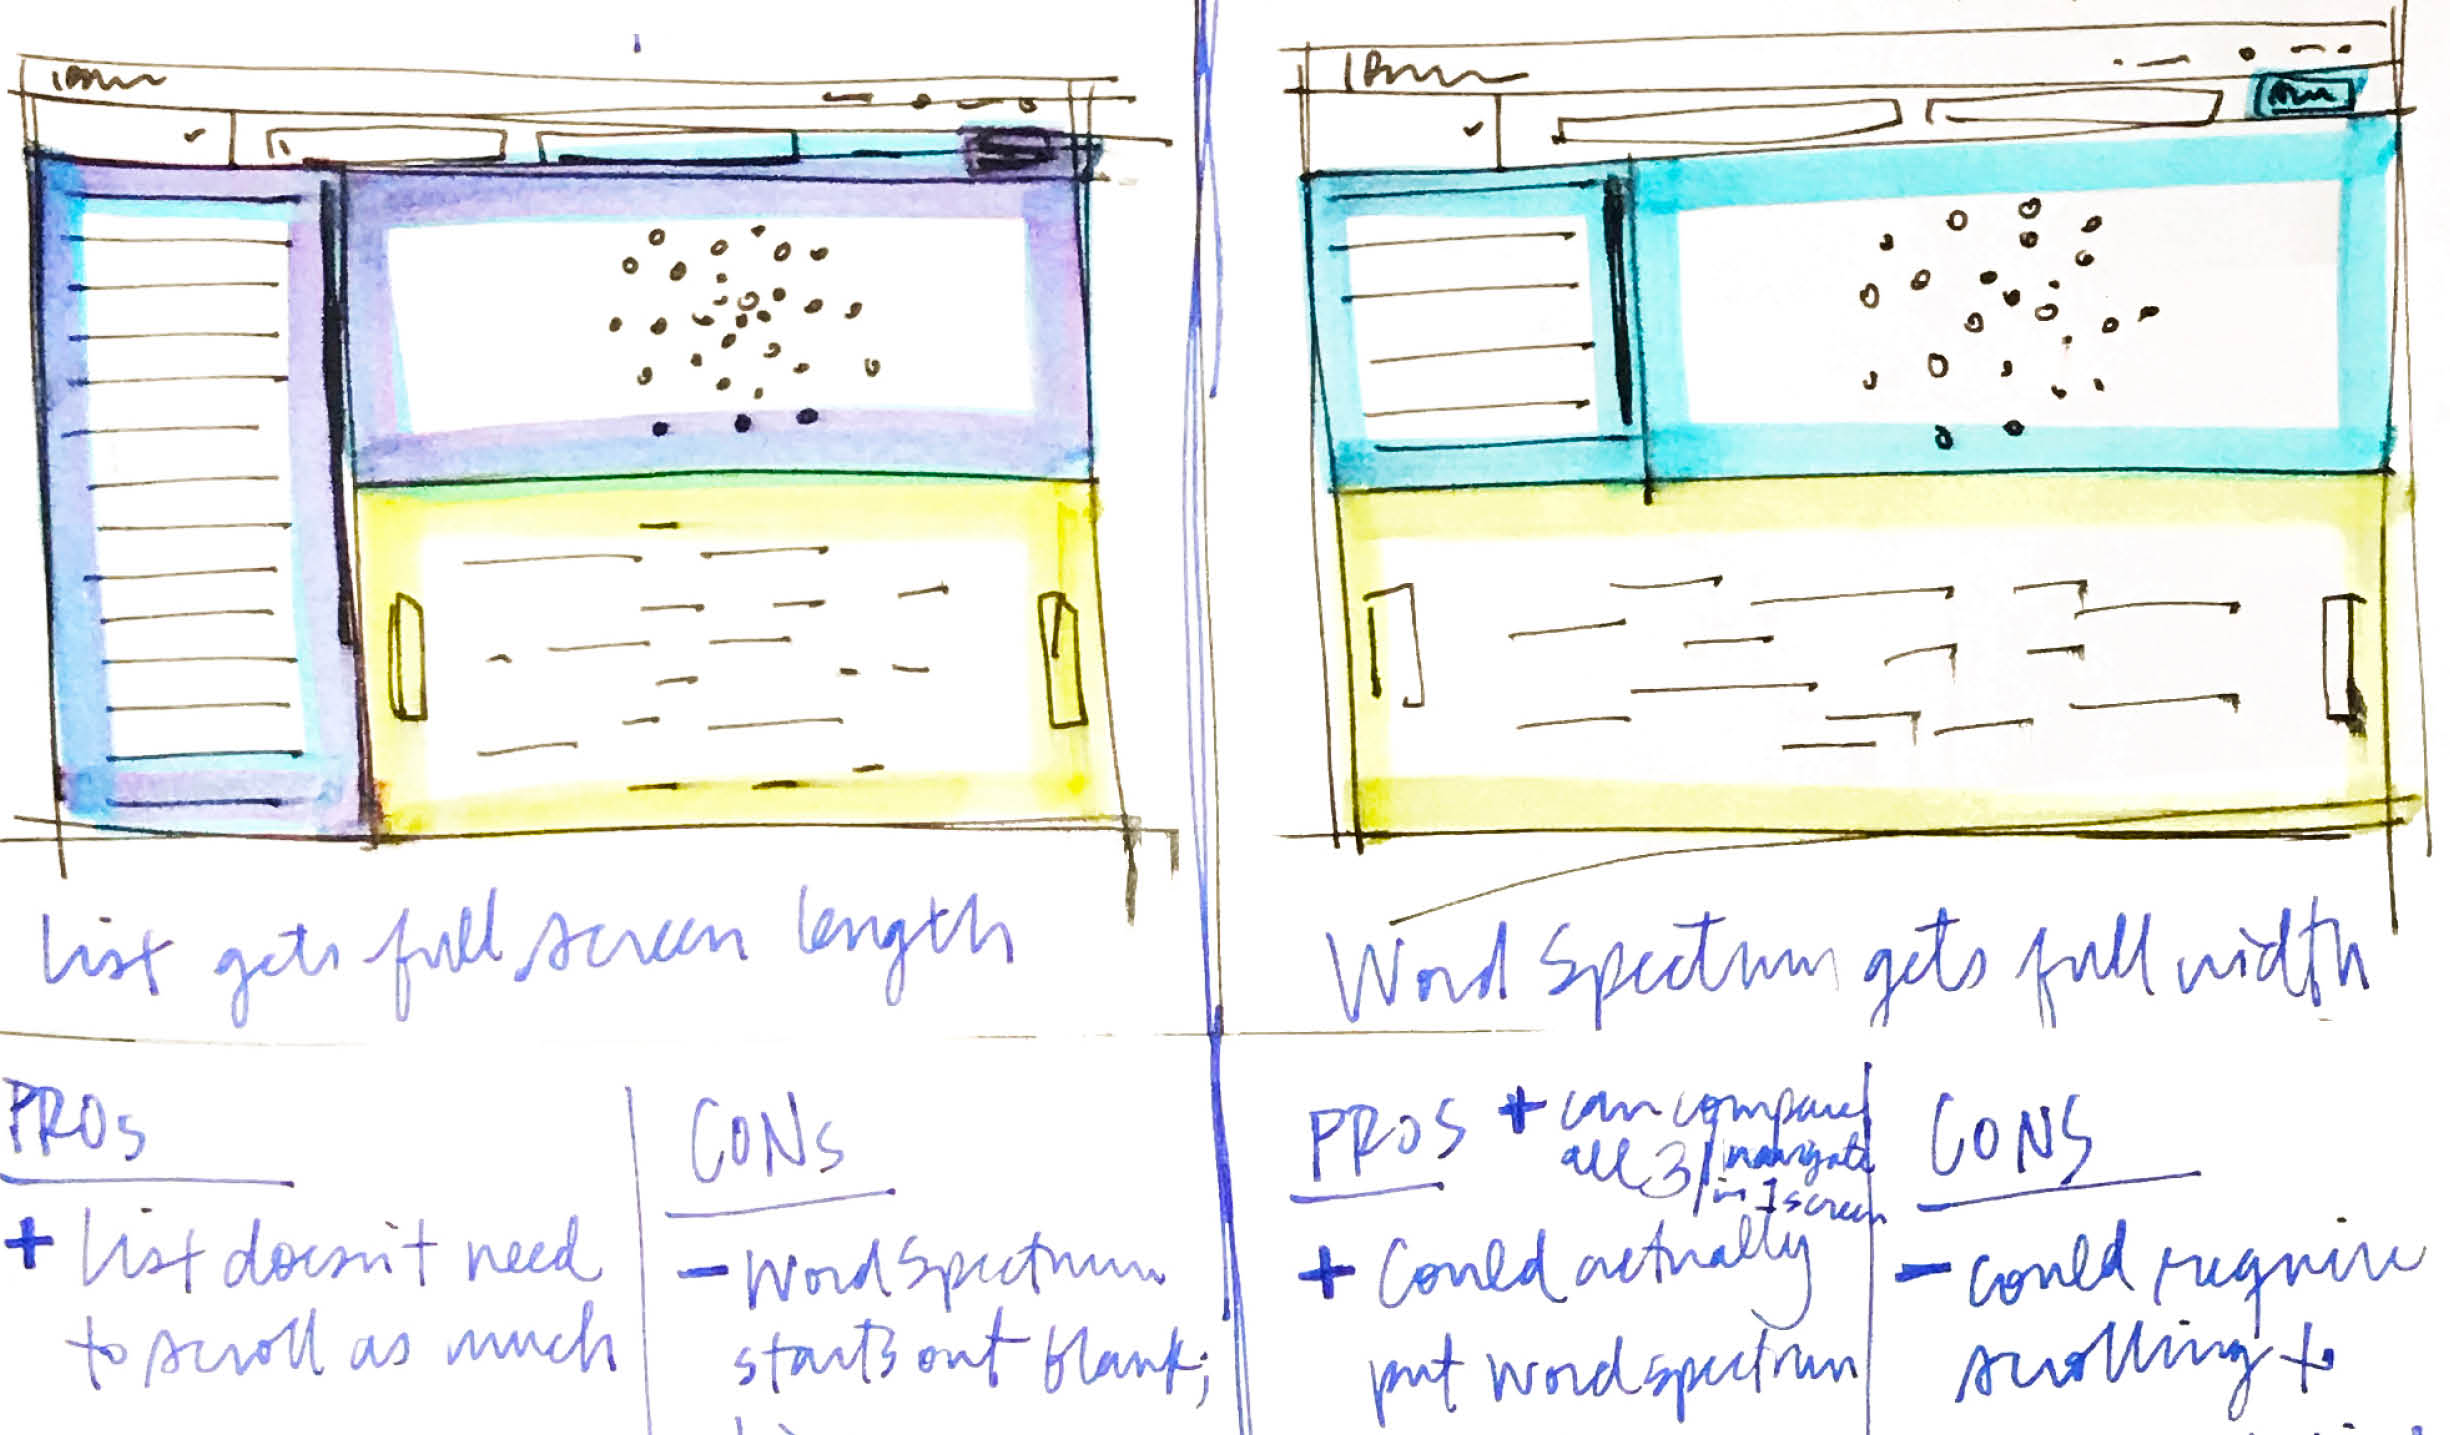 Two more screen sketches: one in which the list takes up the left side lengthwise, while the force diagram sits atop the word spectrum, each getting half of the remaining space, and one in which the word spectrum has been stretched to fit the entire bottom section horizontally.